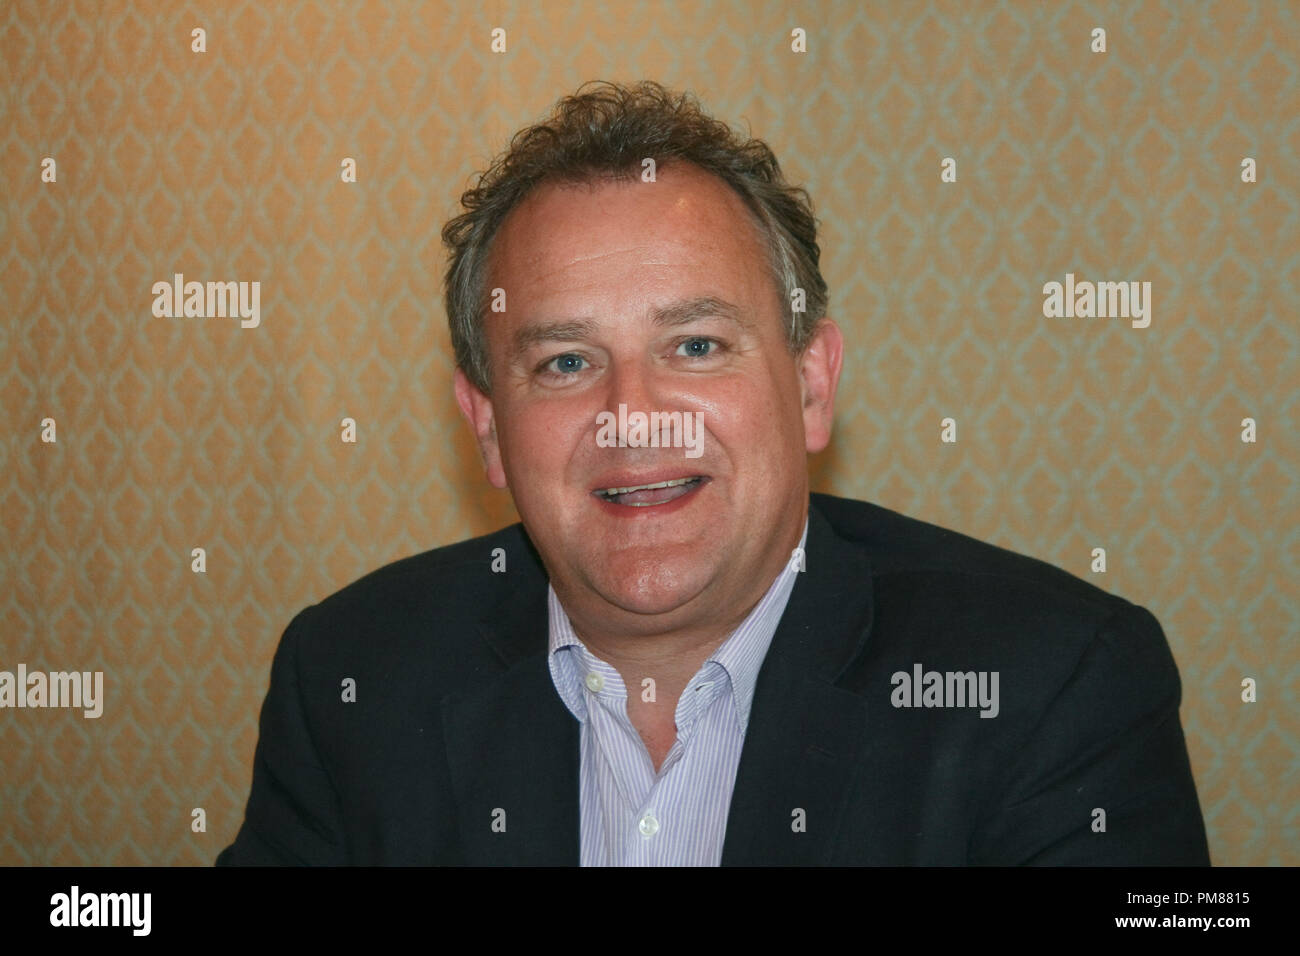 Hugh Bonneville   'Downton Abbey'  Portrait Session, July 22, 2012.  Reproduction by American tabloids is absolutely forbidden. File Reference # 31610_056JRC  For Editorial Use Only -  All Rights Reserved - Stock Image